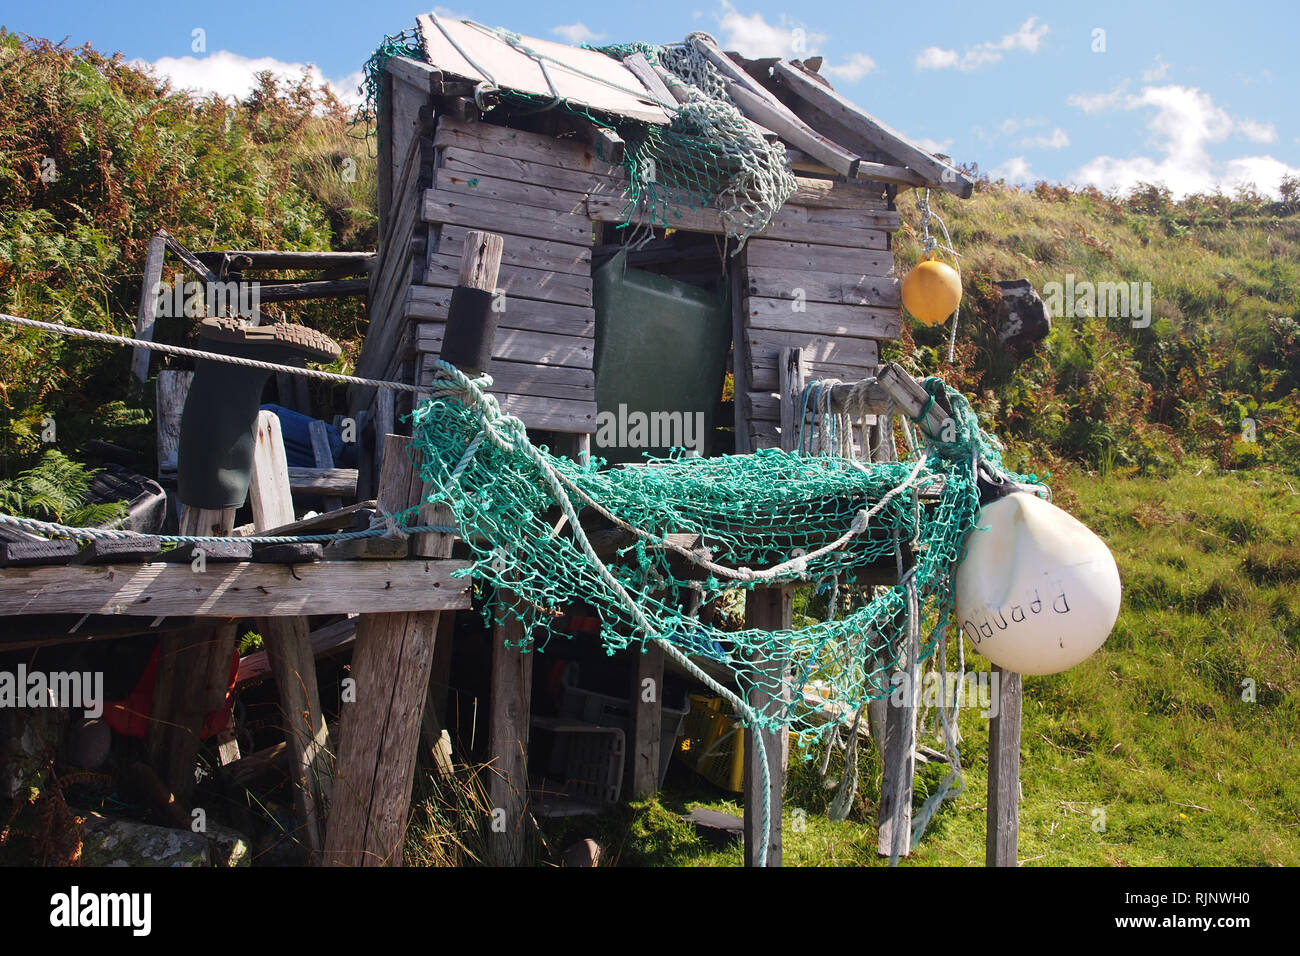 A ramshackle hut made up on a lonely beach near Polbain, Scotland,made out of old timbers, netting, bouys and hung with ropes and washed up debris - Stock Image